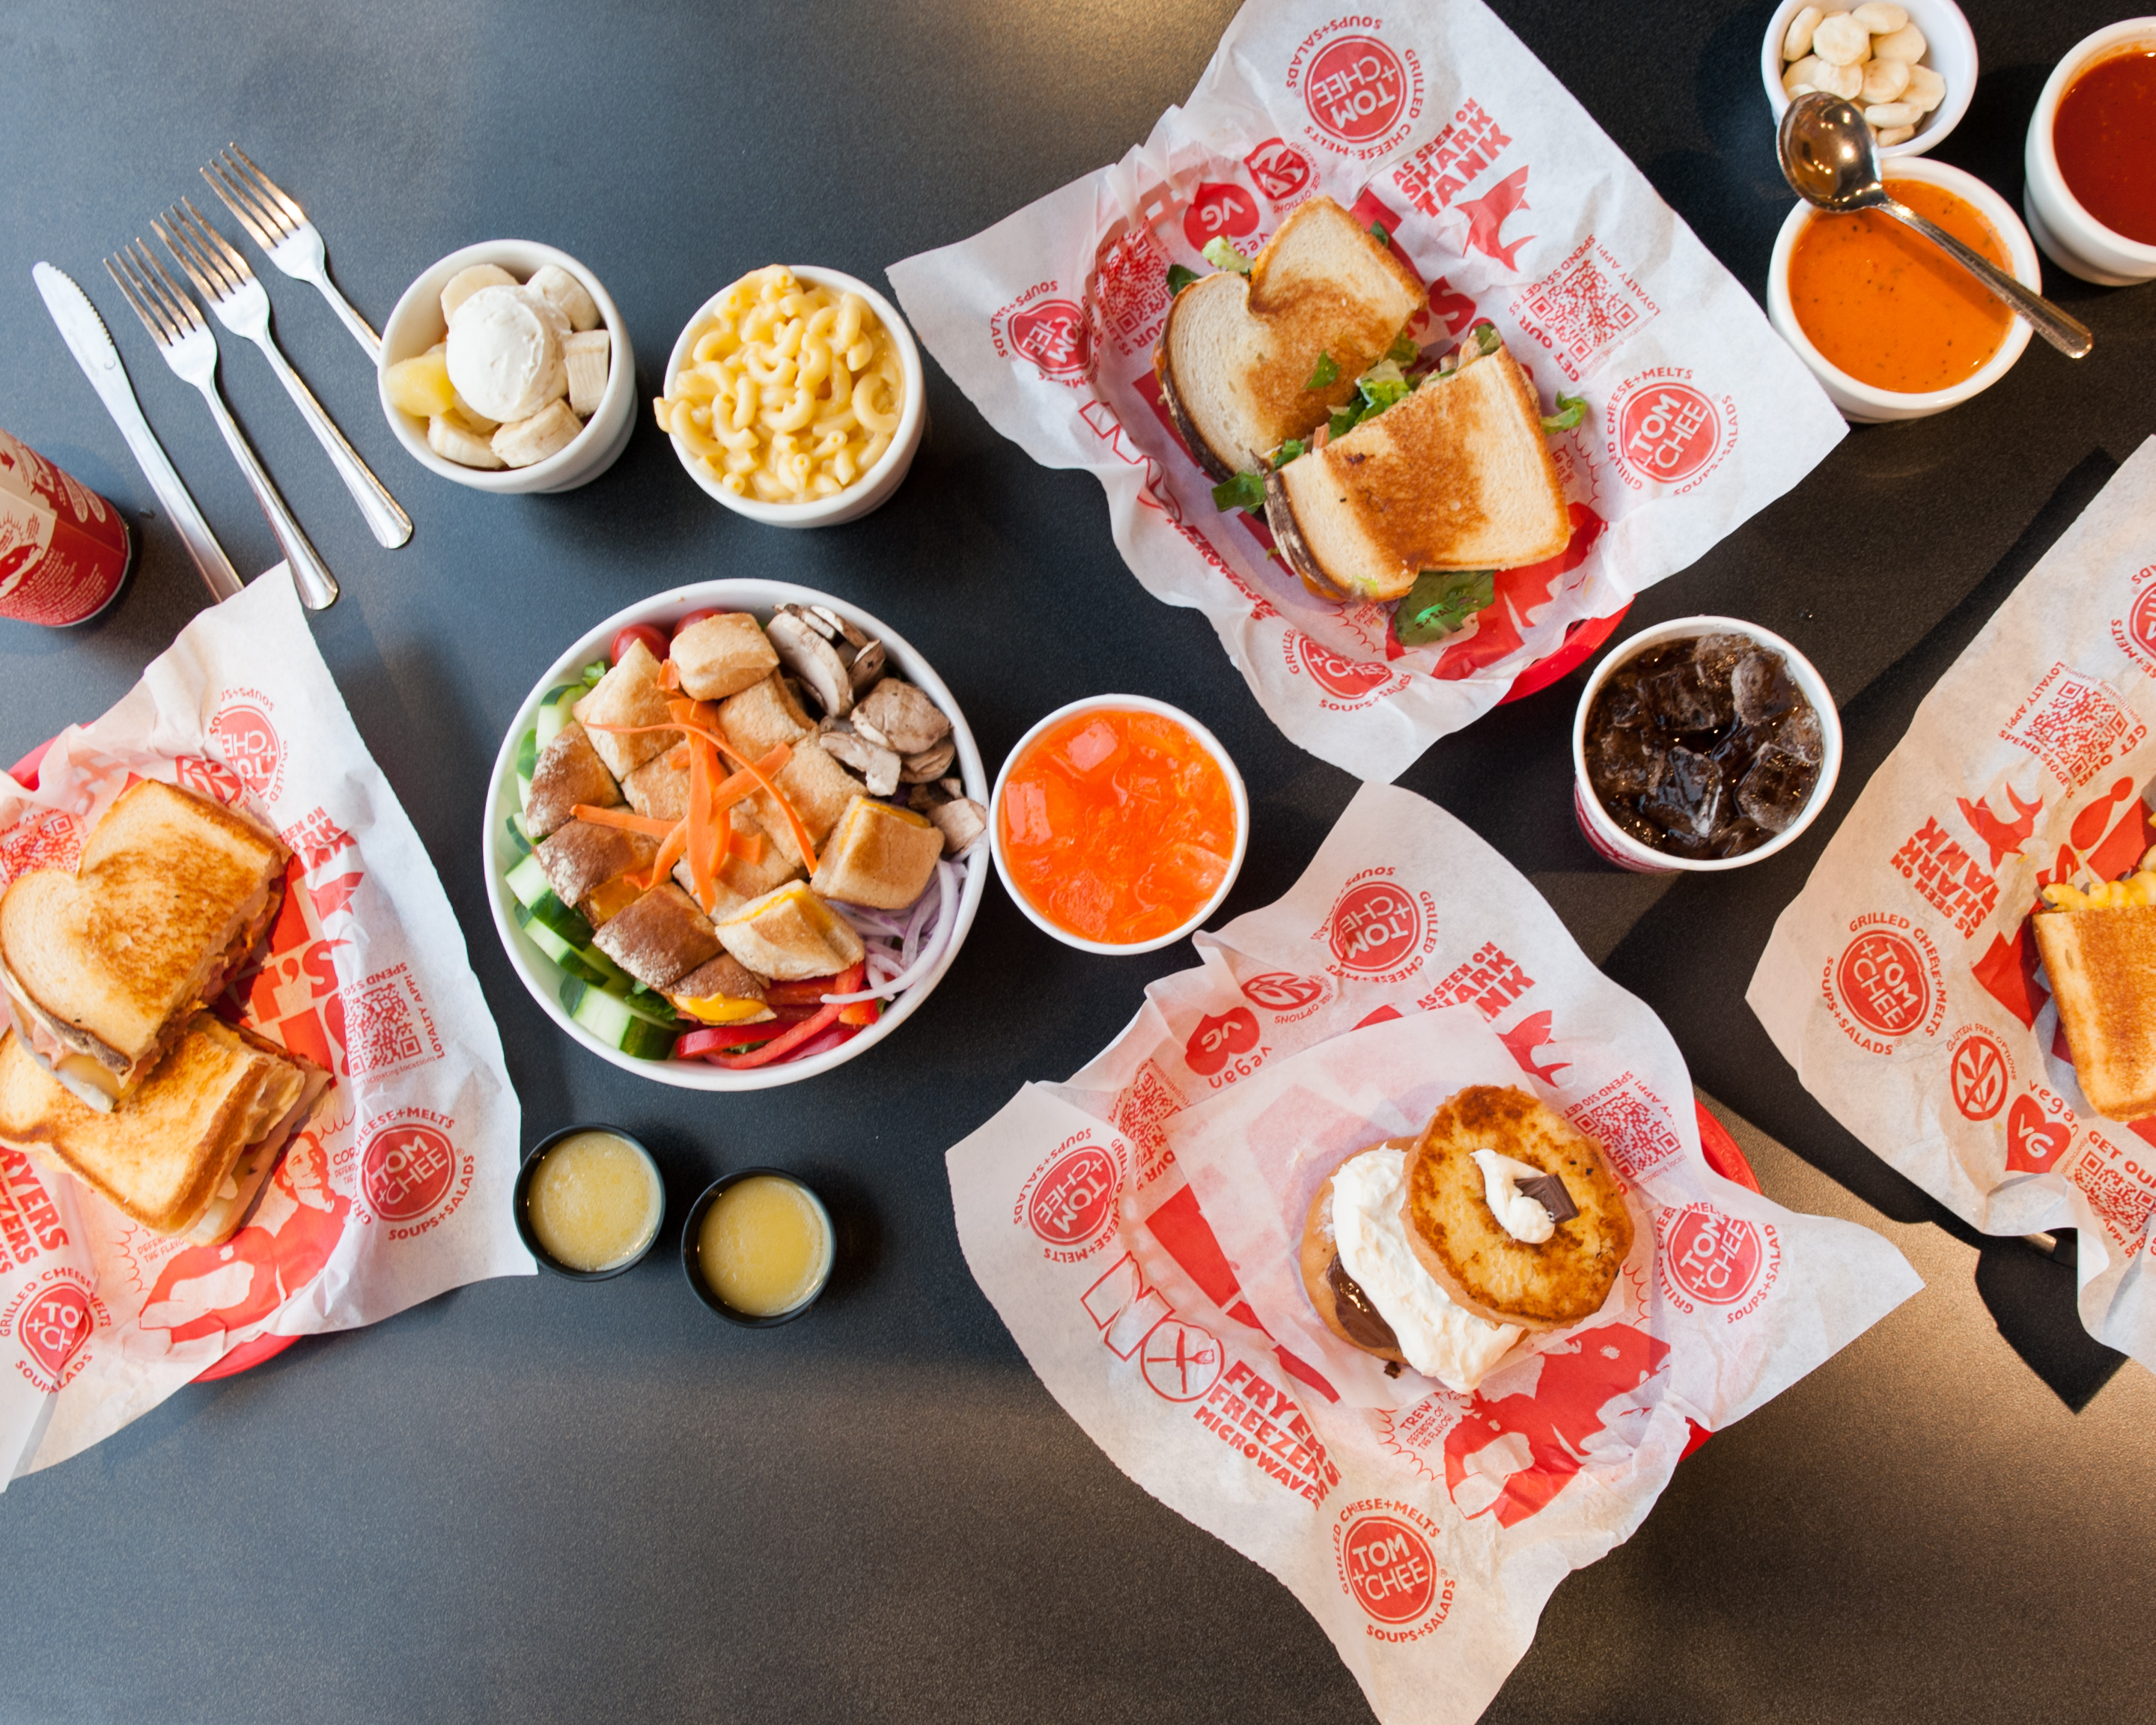 Tom & Chee (Anderson)